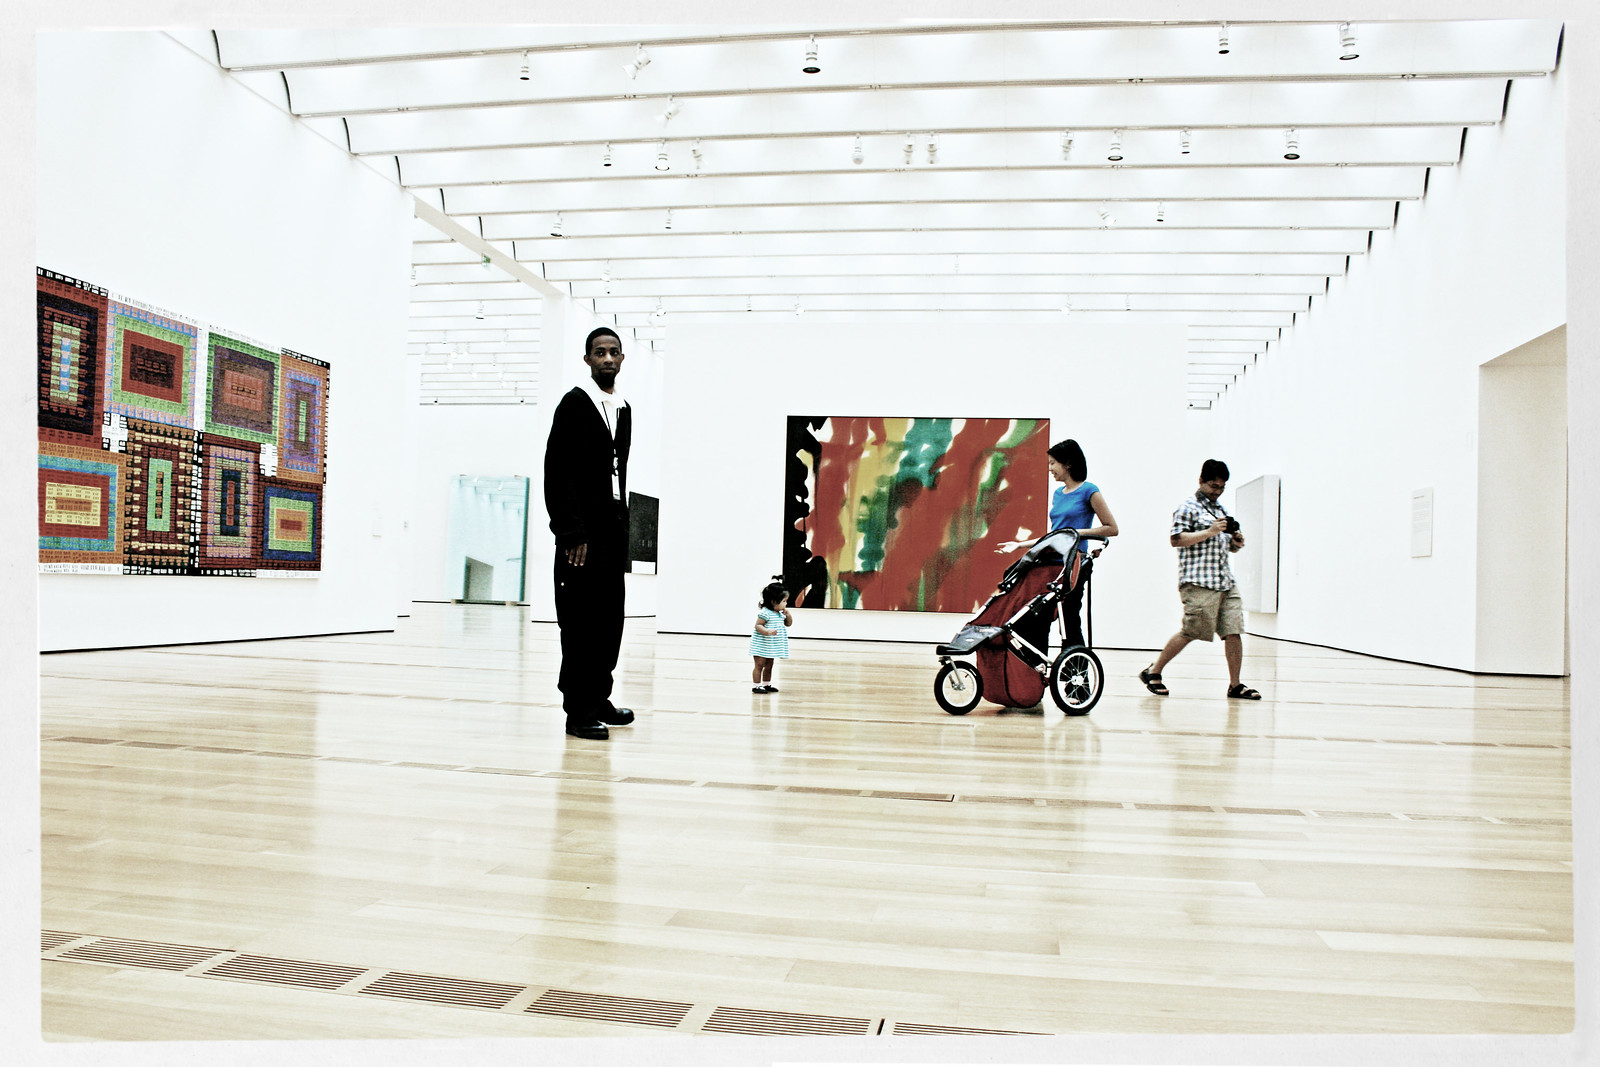 The High Museum, Stroller 1